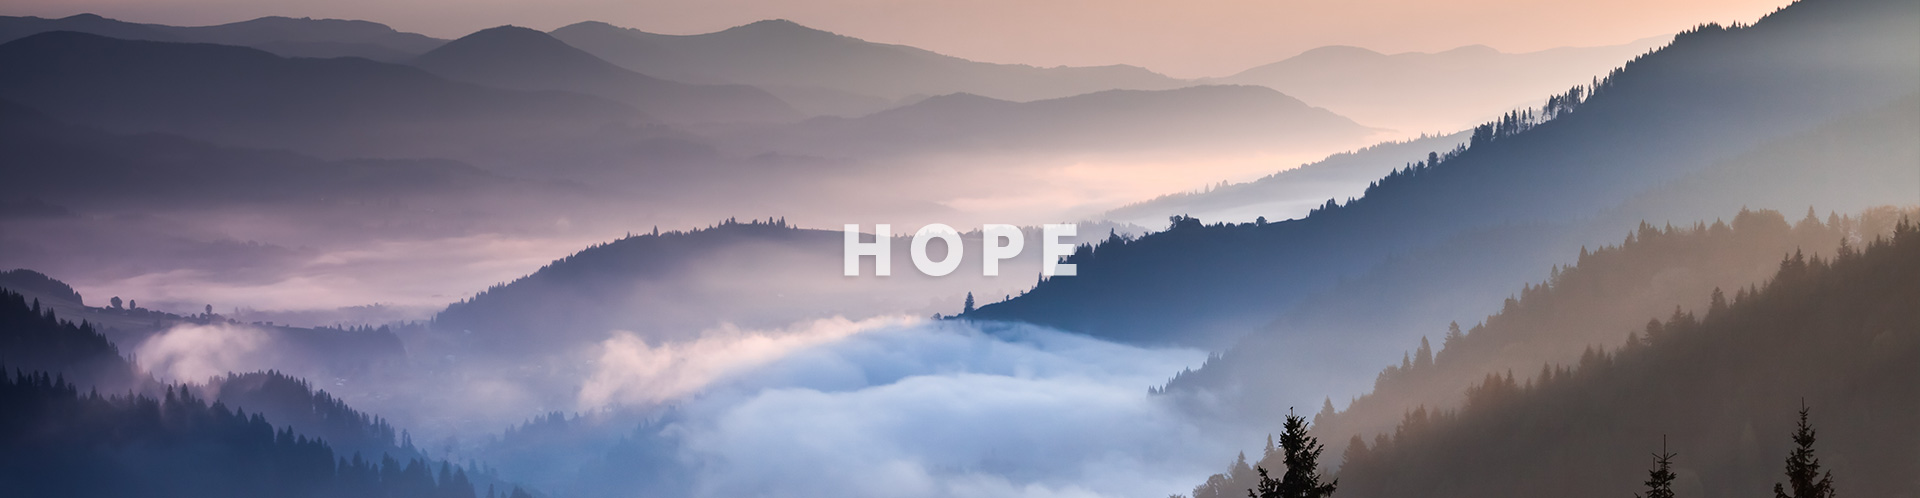 Gallery Image hope.jpg